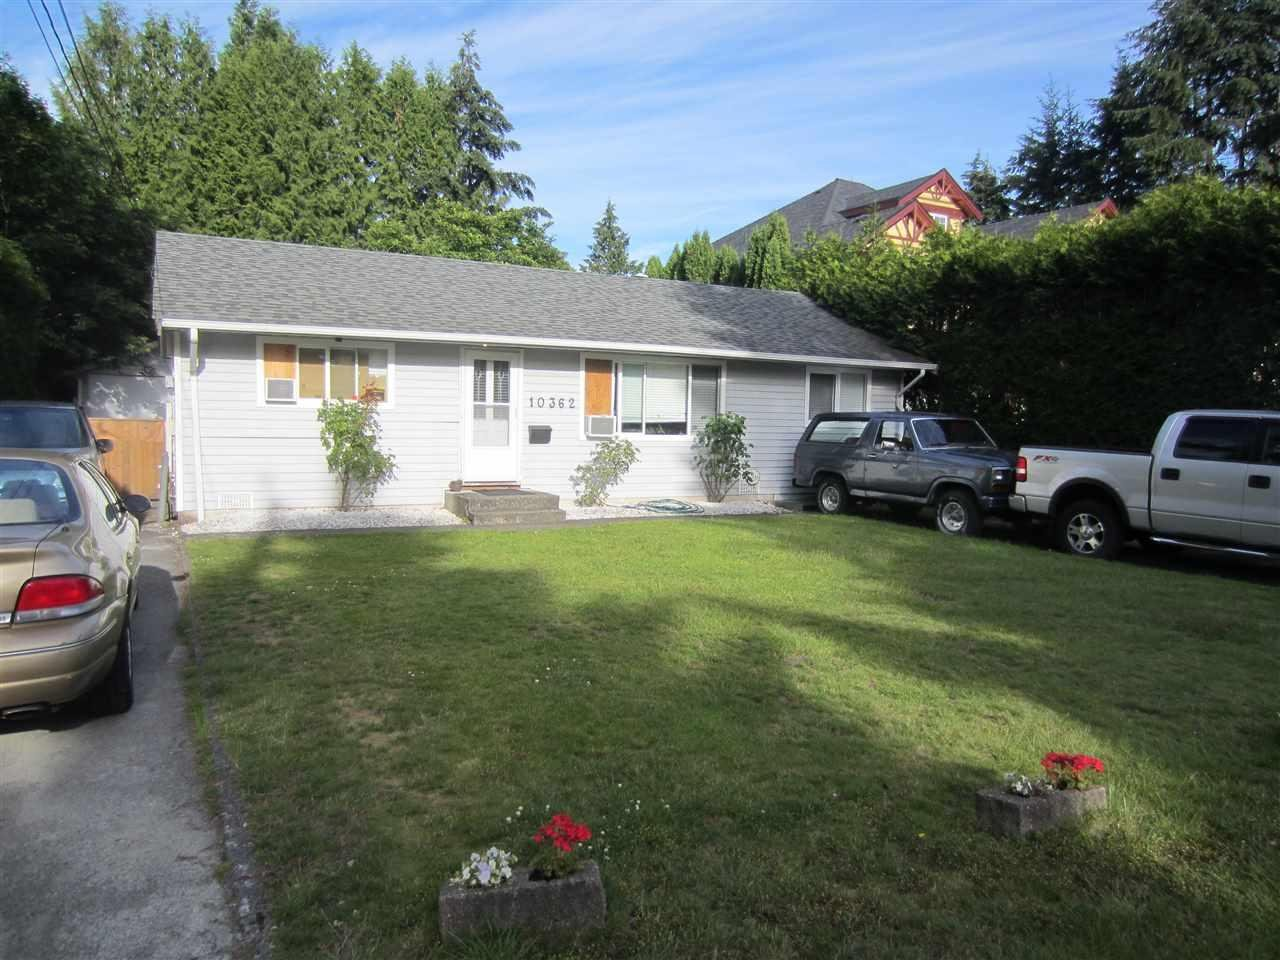 R2081809 - 10362 155A STREET, Guildford, Surrey, BC - House/Single Family